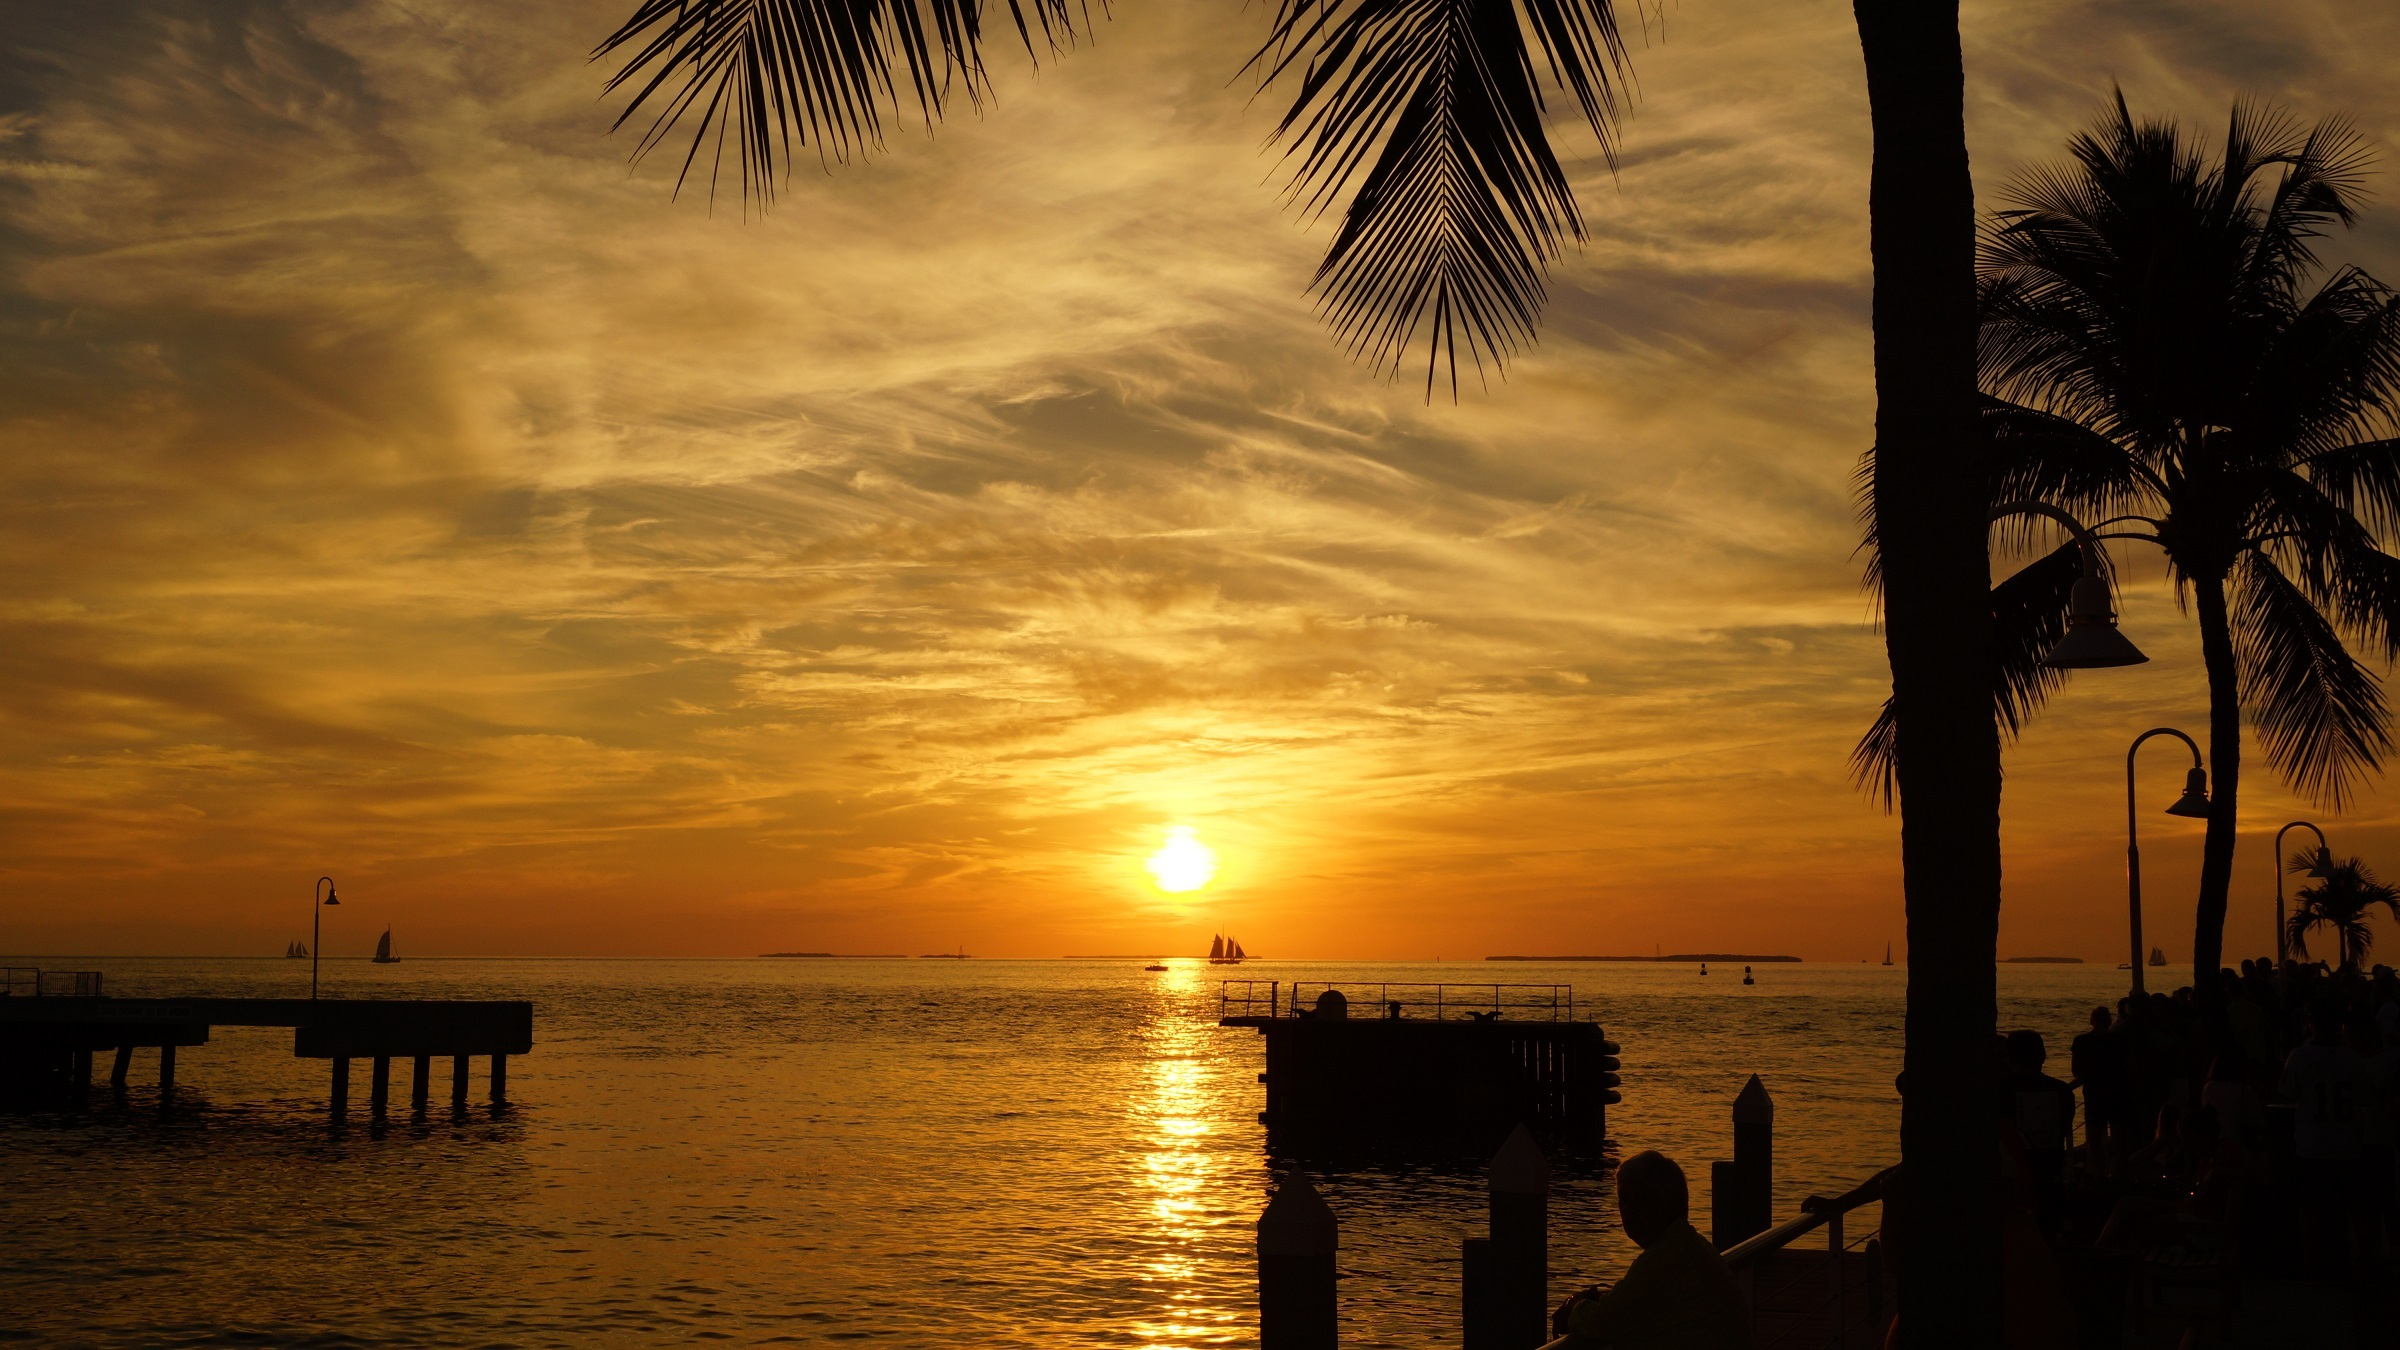 Sunset In Key West Florida Hd Wallpaper Background Image